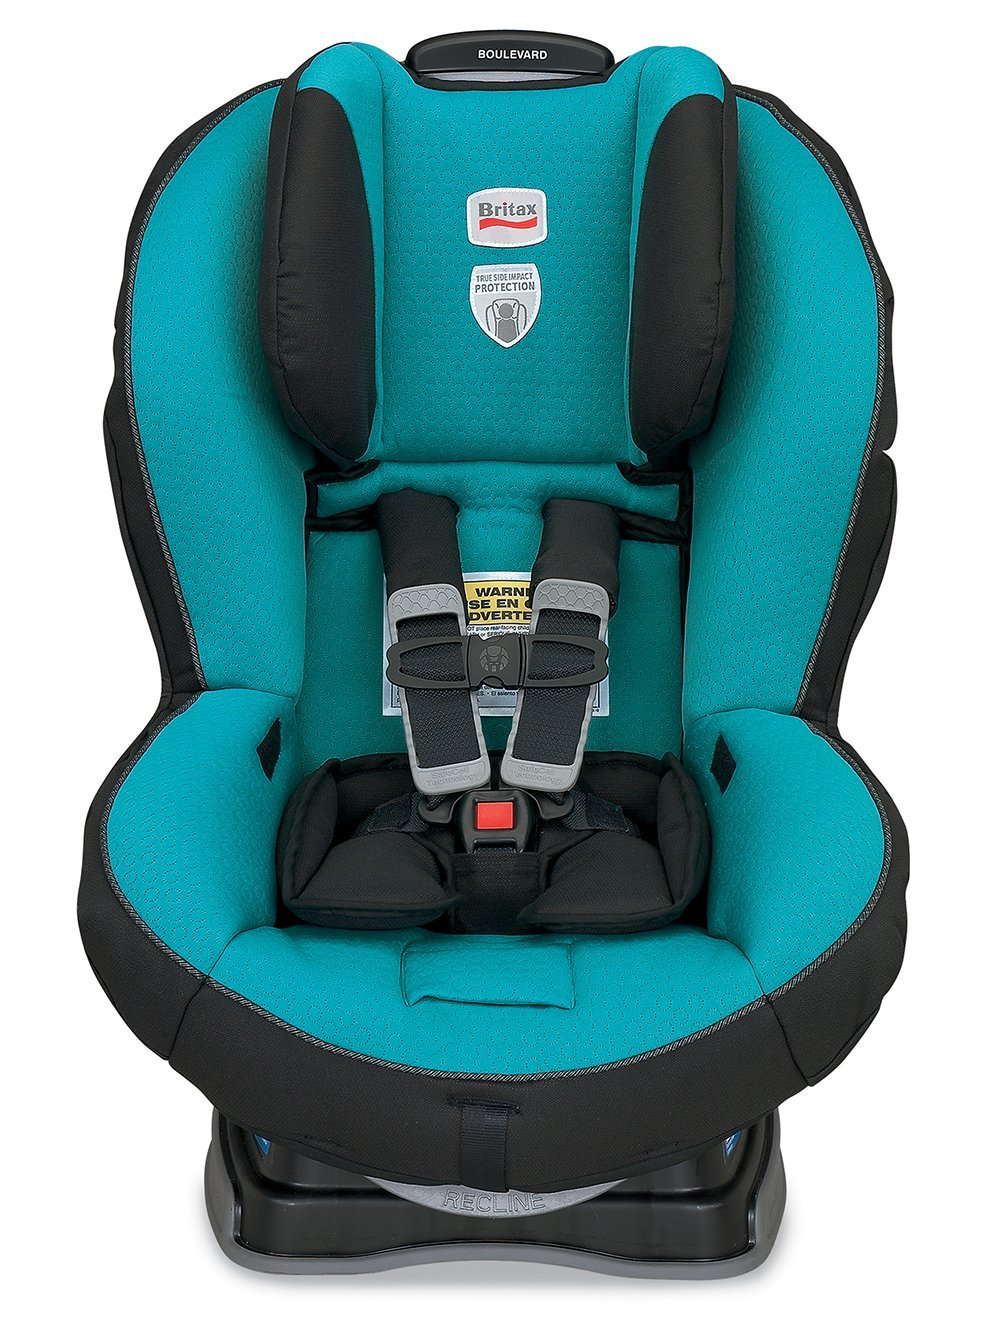 If you don t mind opting for the 2013 version of britax car seats those are priced even lower